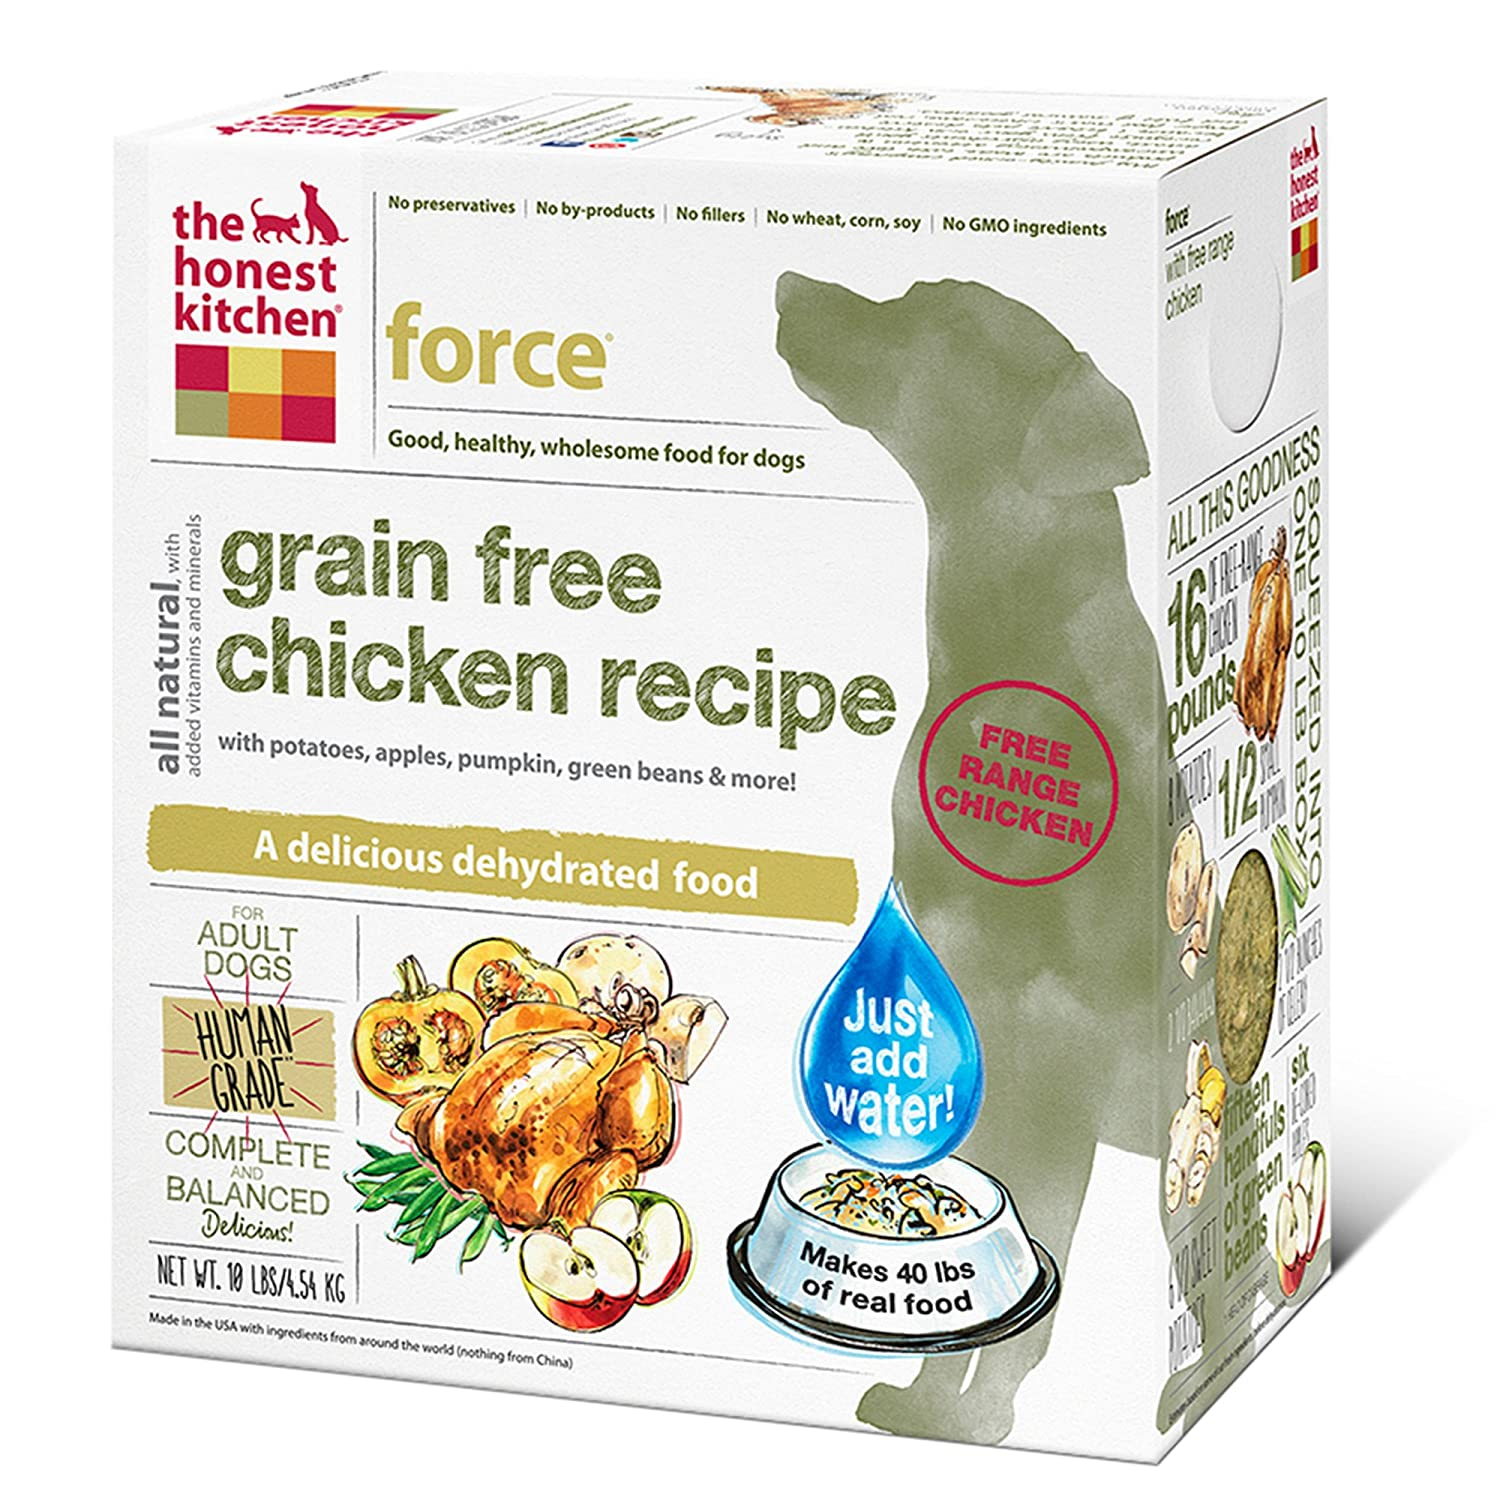 superb Is The Honest Kitchen Healthy For My Dog #2: Amazon.com: The Honest Kitchen Force: Natural Human Grade Dehydrated Dog Food, Grain Free Chicken, 10 lbs (Makes 40 lbs): Pet Supplies